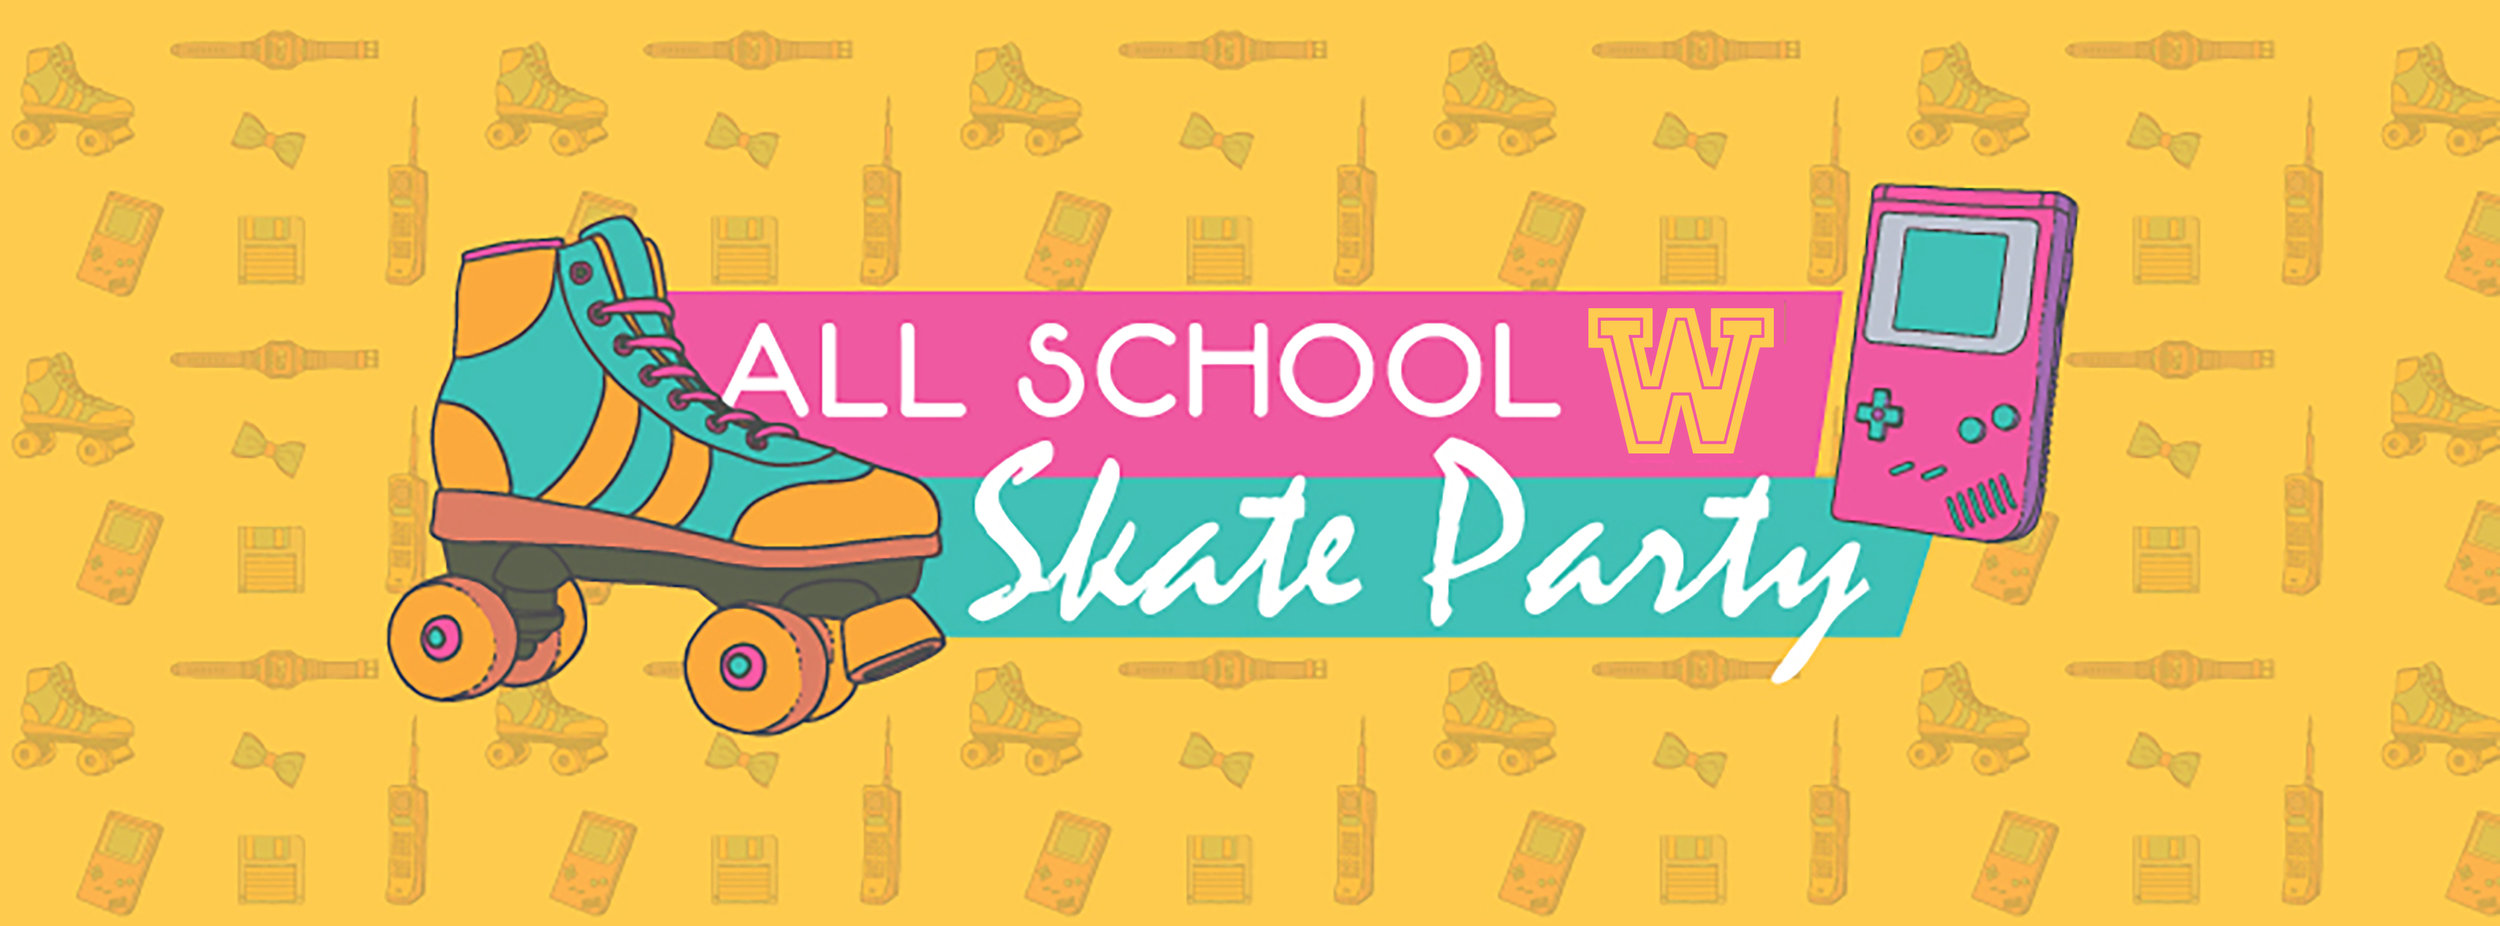 skate-party---all-school--FB-cover_new.jpg